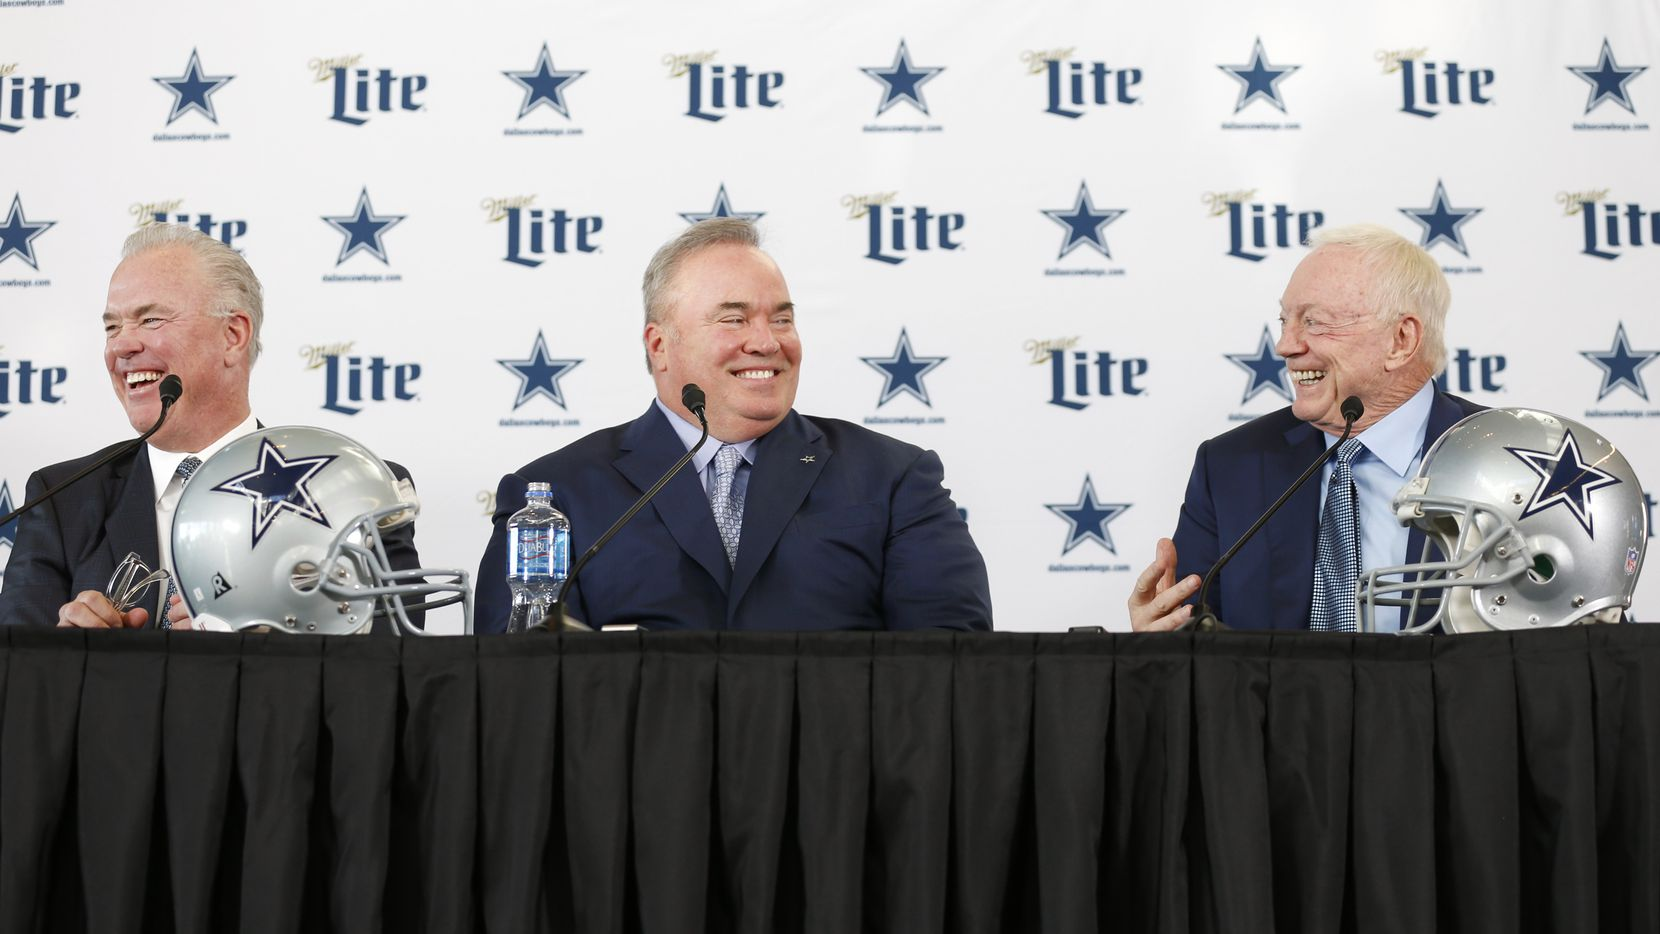 Dallas Cowboys new head coach Mike McCarthy (center) shares a laugh with Dallas Cowboys executive vice president Stephen Jones (left) and Dallas Cowboys owner and general manager Jerry Jones (right) during a press conference in the Ford Center at The Star in Frisco, on Wednesday, January 8, 2020.